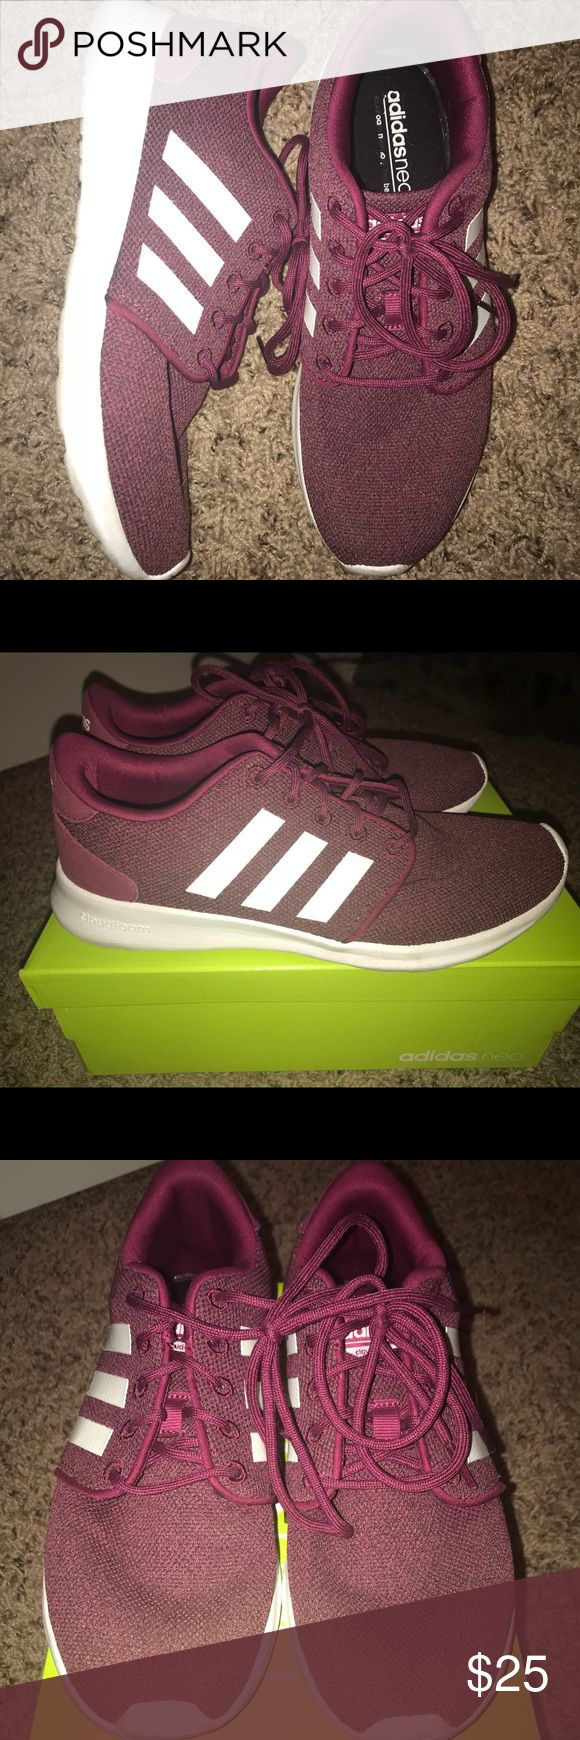 Adidas Cloudfoam QT Racers Women's size 7, maroon Adidas Cloudfoam sneakers.  Gently used, super comfortable! Smoke free home. adidas Shoes Athletic Shoes